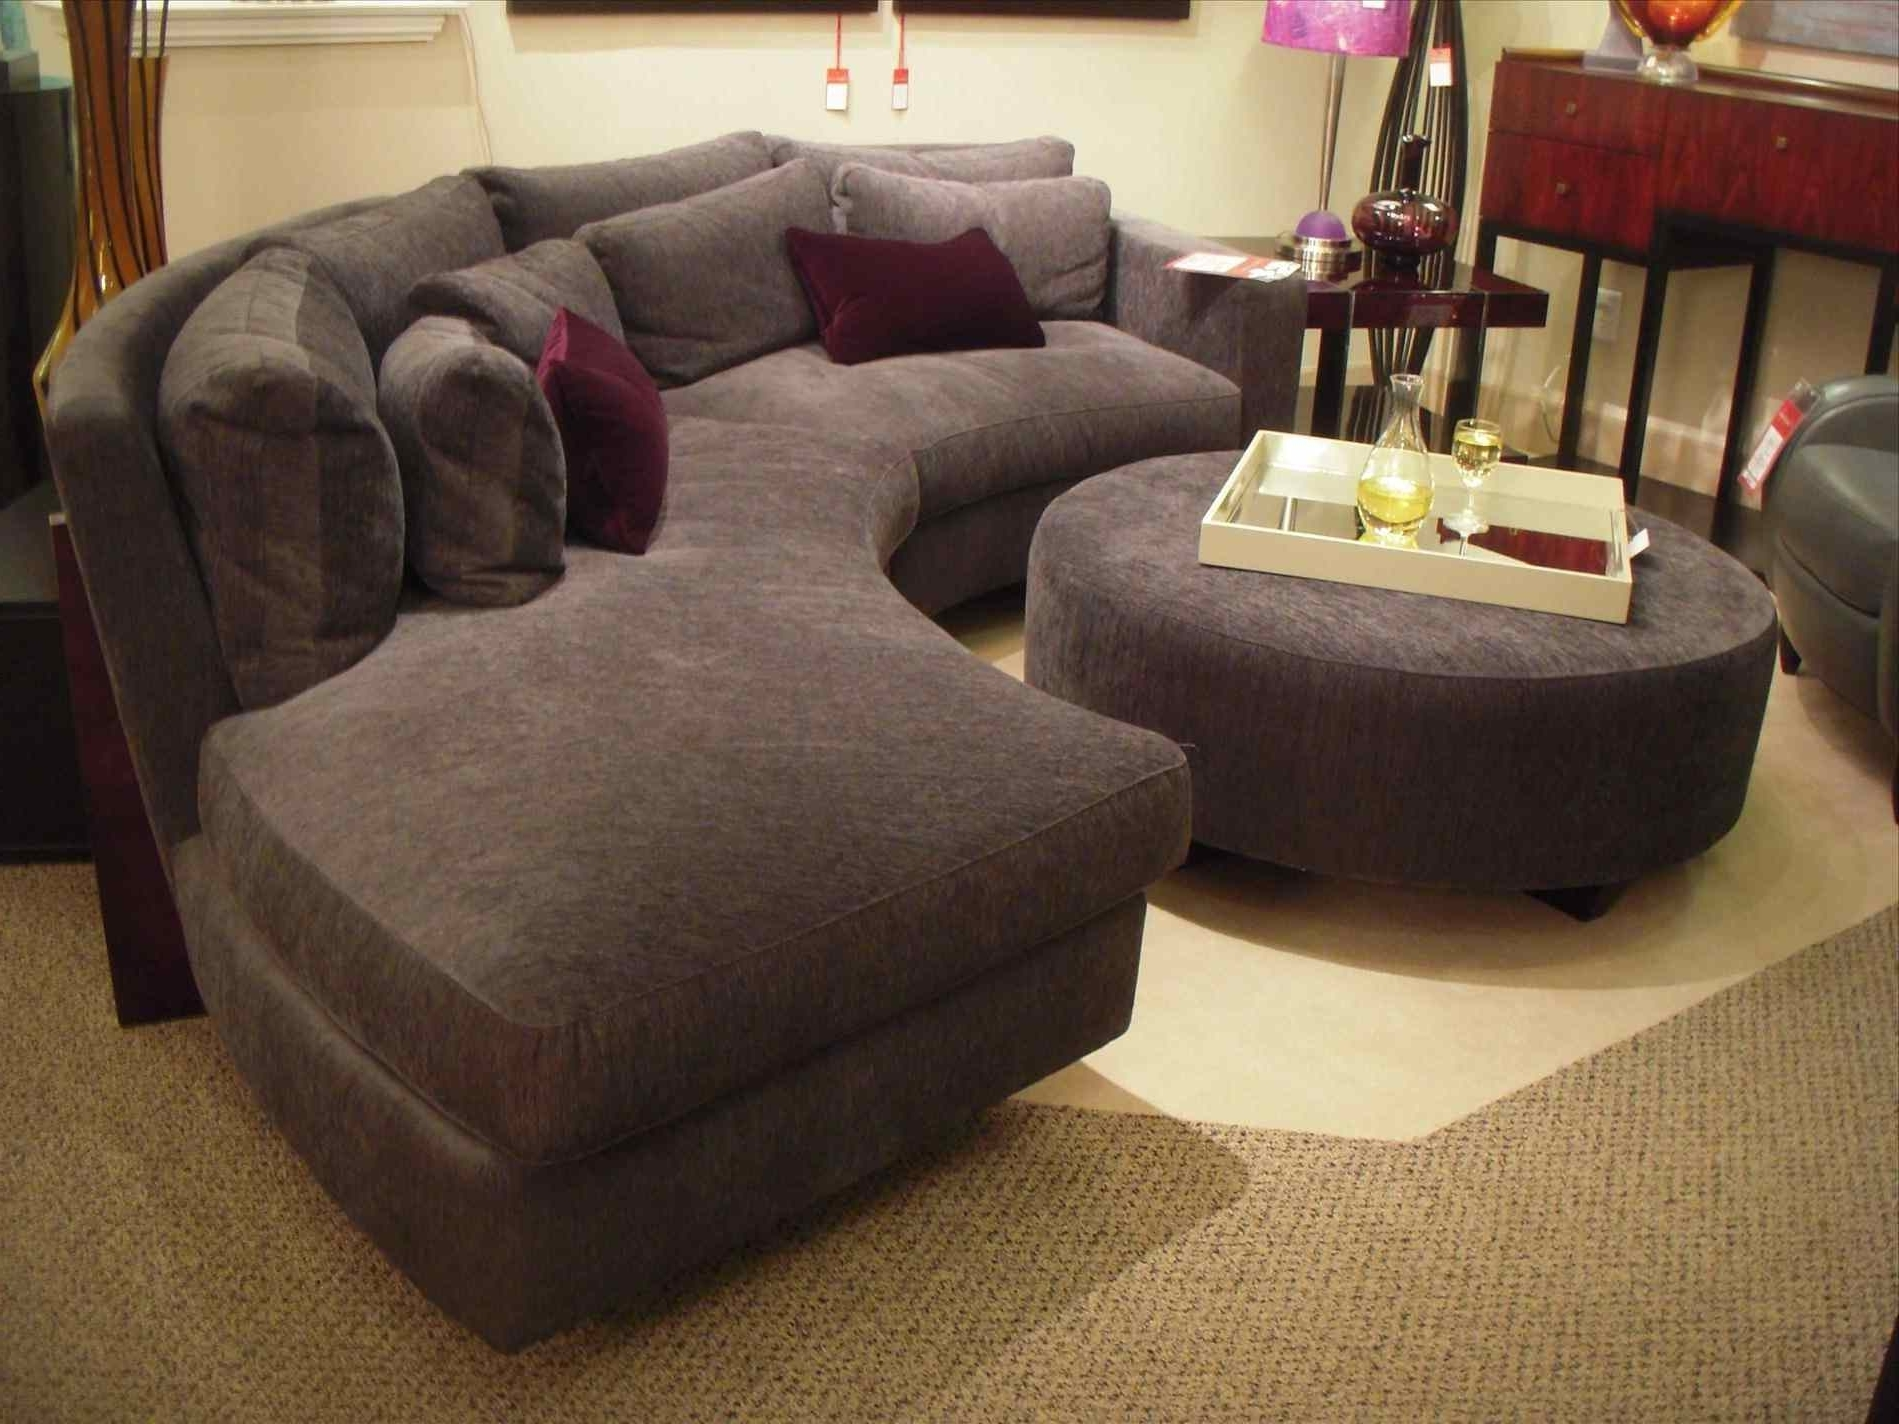 Most Popular Round Sofas Throughout Couch : Wonderful Antique Studio Leather Round Couch Chair Sofa (View 6 of 15)